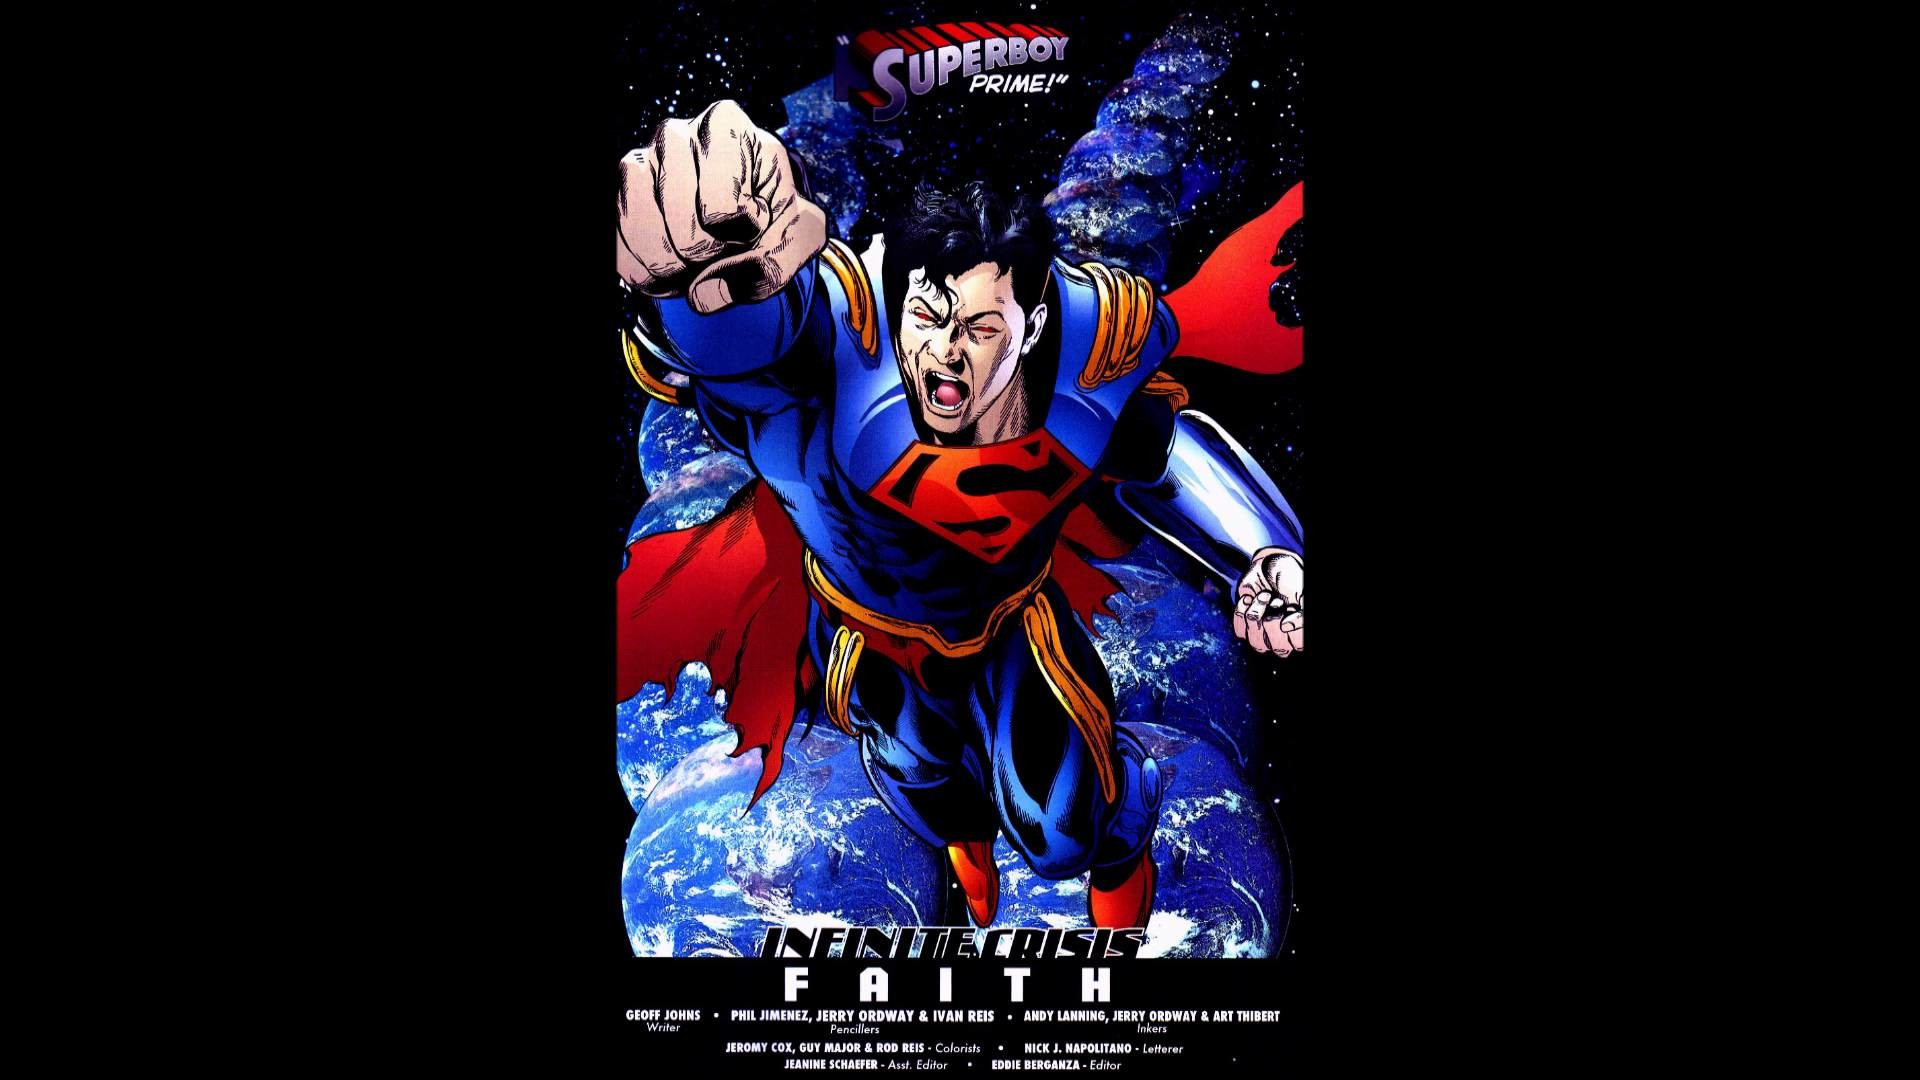 TOP FEATS – SUPERBOY PRIME – THE DEFINITION OF OVERPOWER